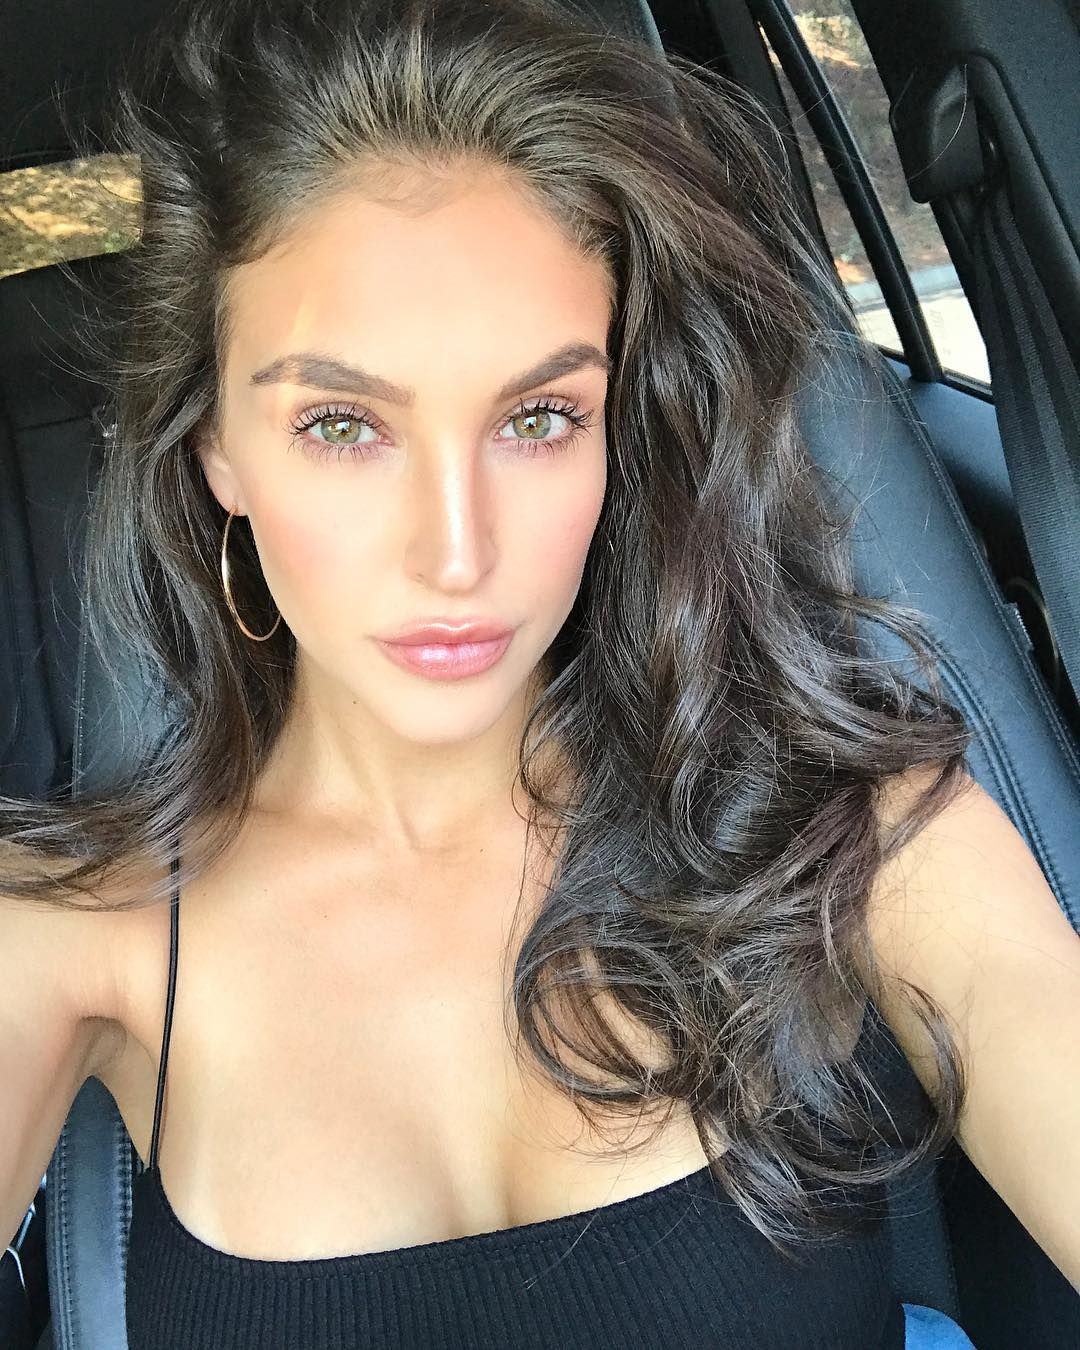 Selfie Jaclyn Swedberg naked (92 photos), Sexy, Fappening, Instagram, butt 2006